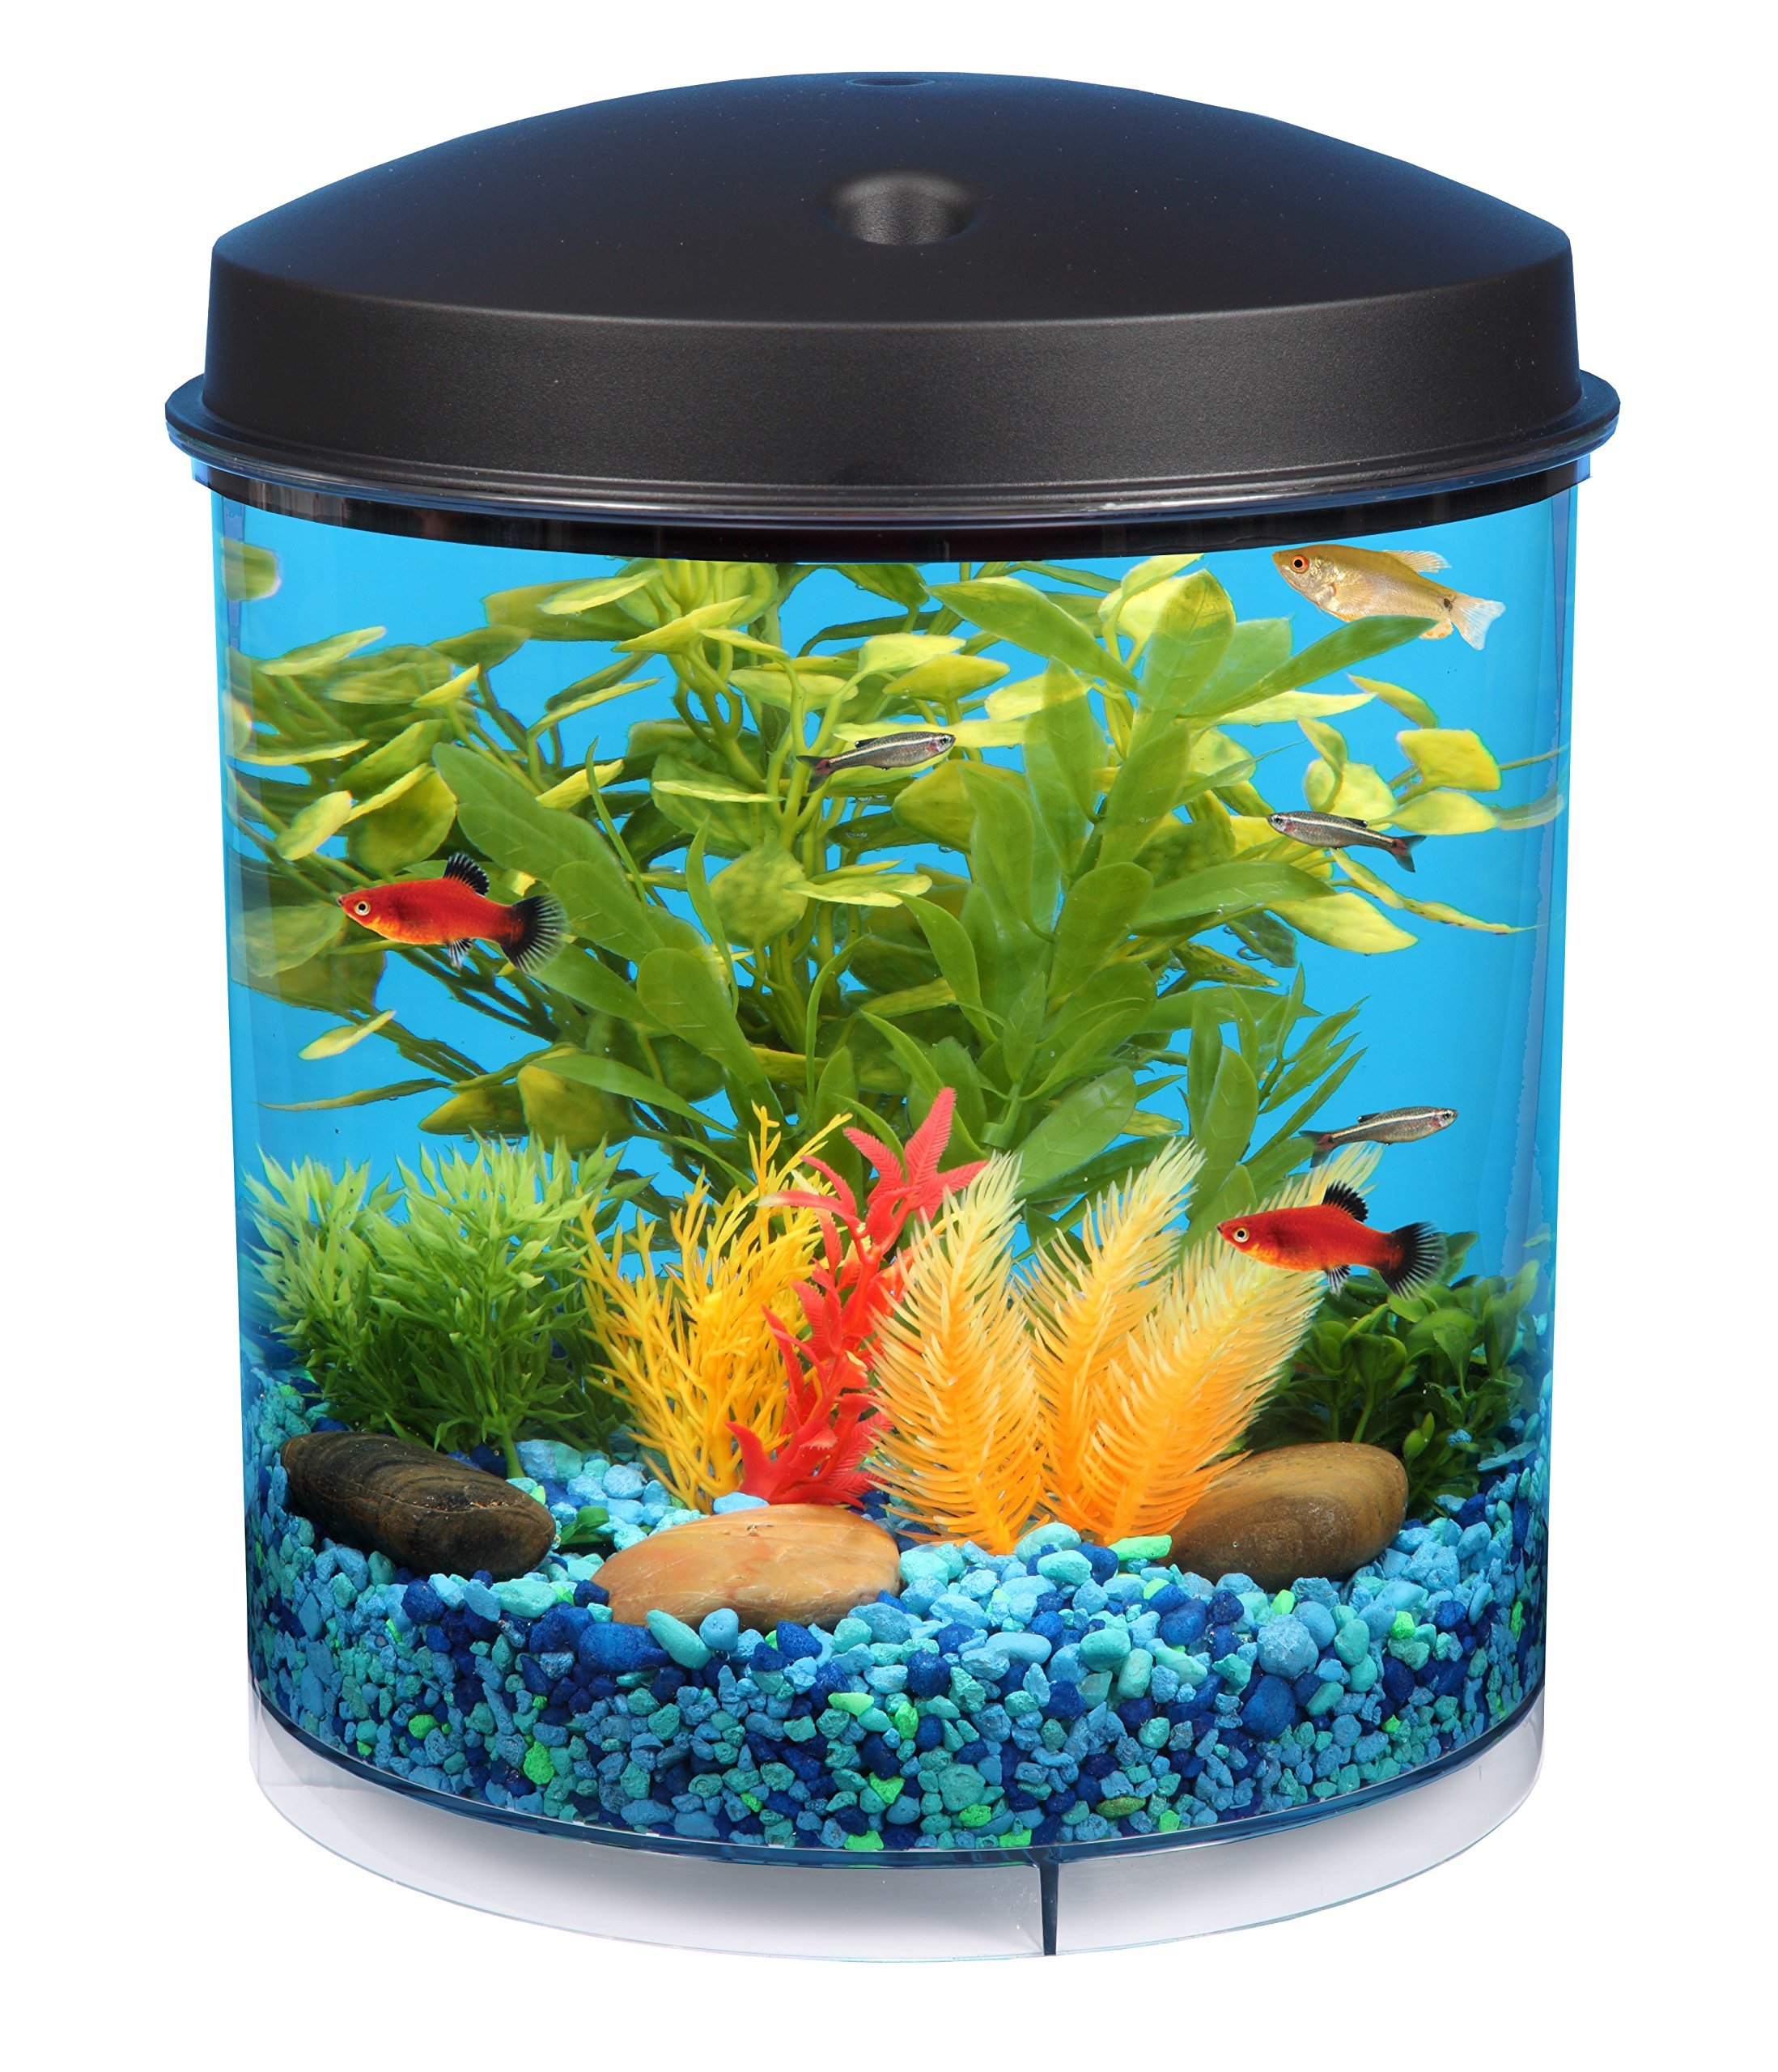 New 2 gallon aquarium with led lighting and internal for Fish tanks for kids